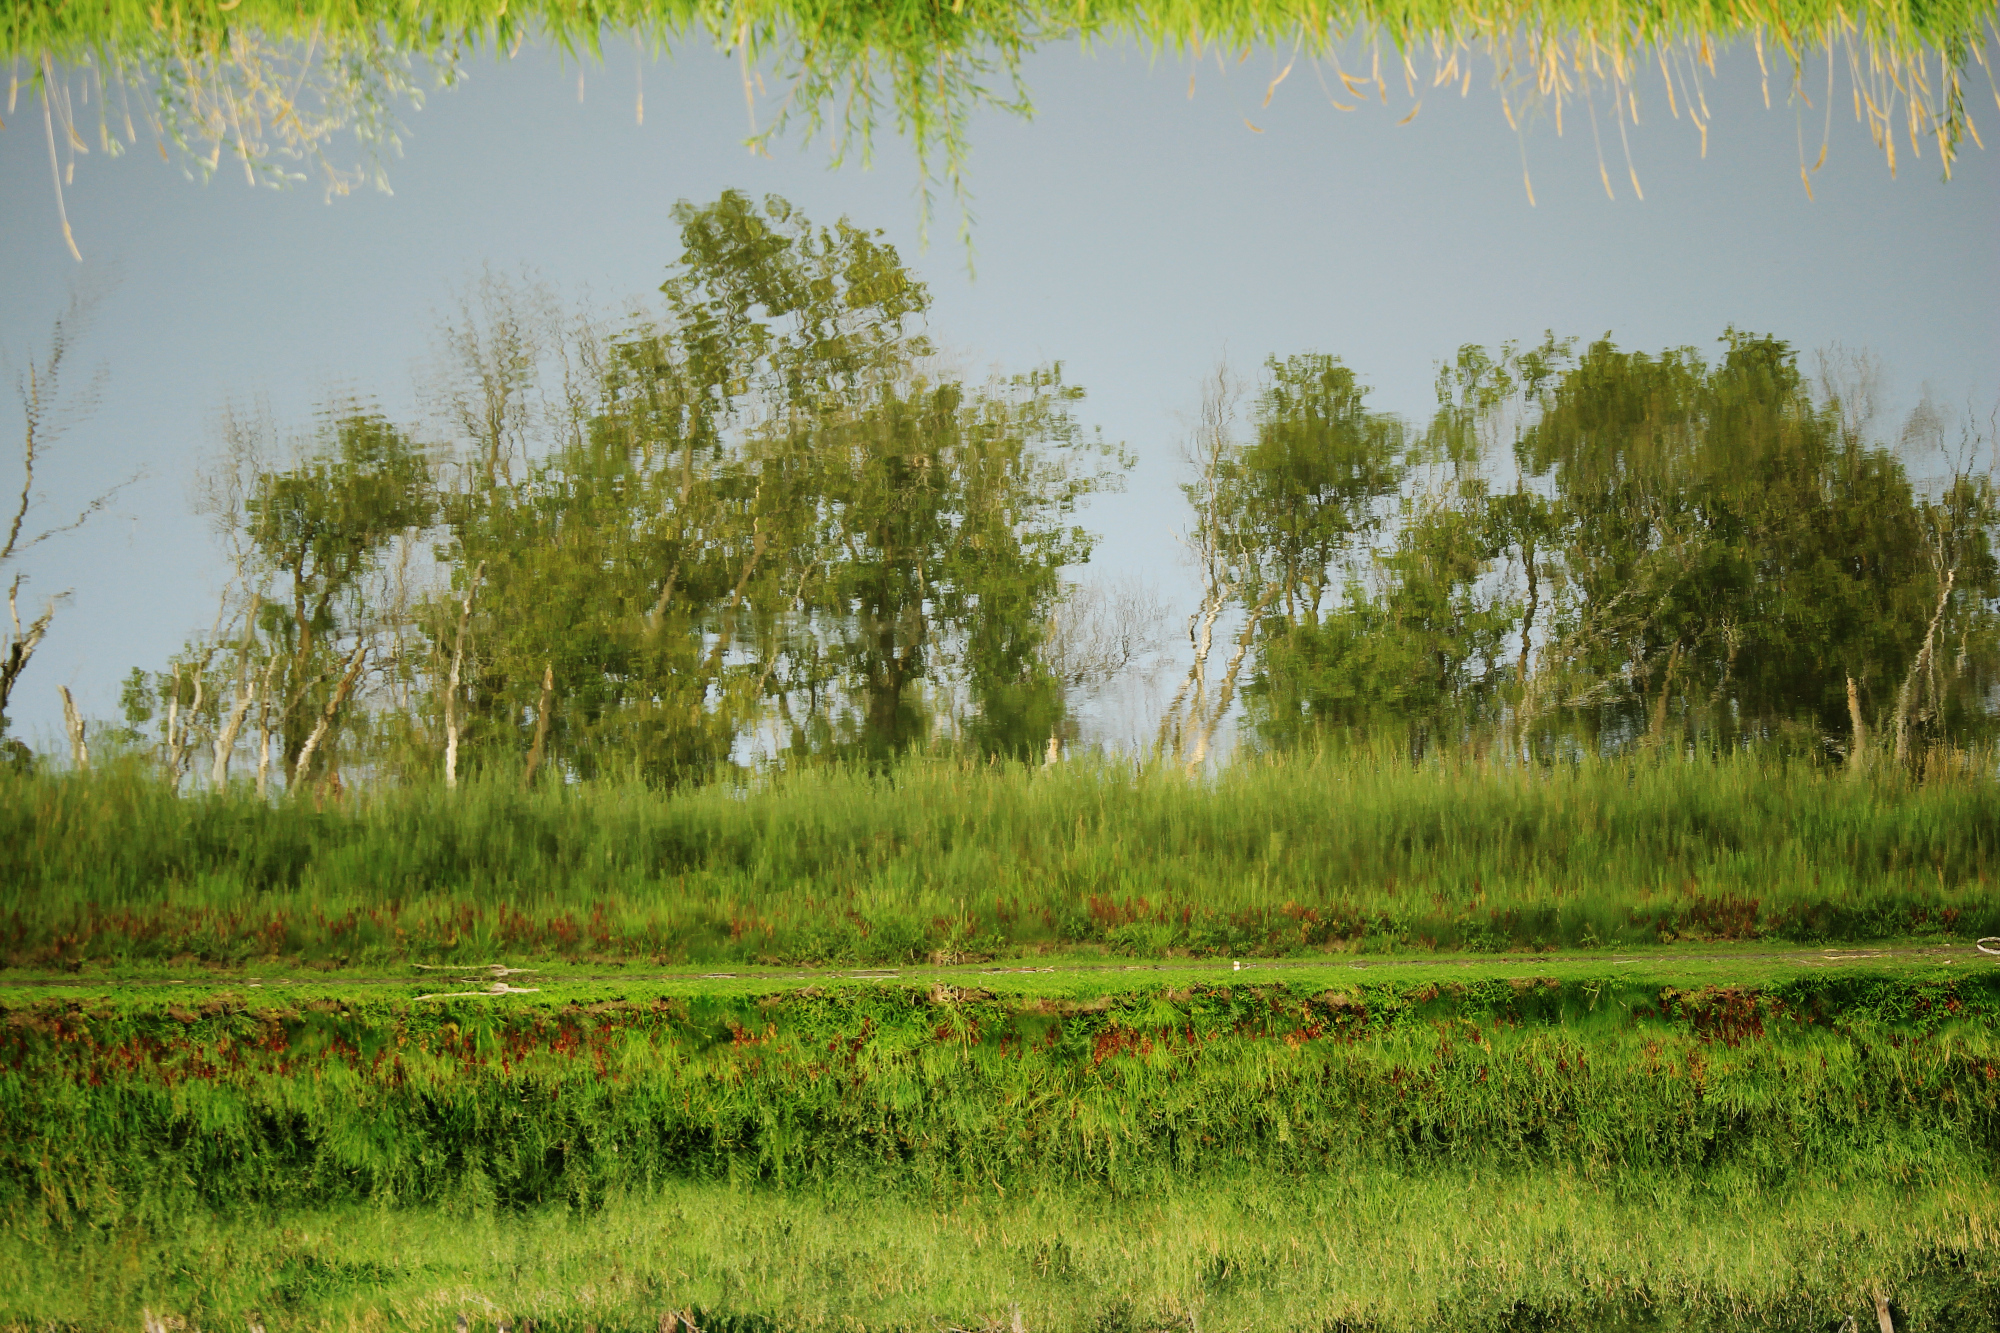 Trees reflected in the Assiniboine River